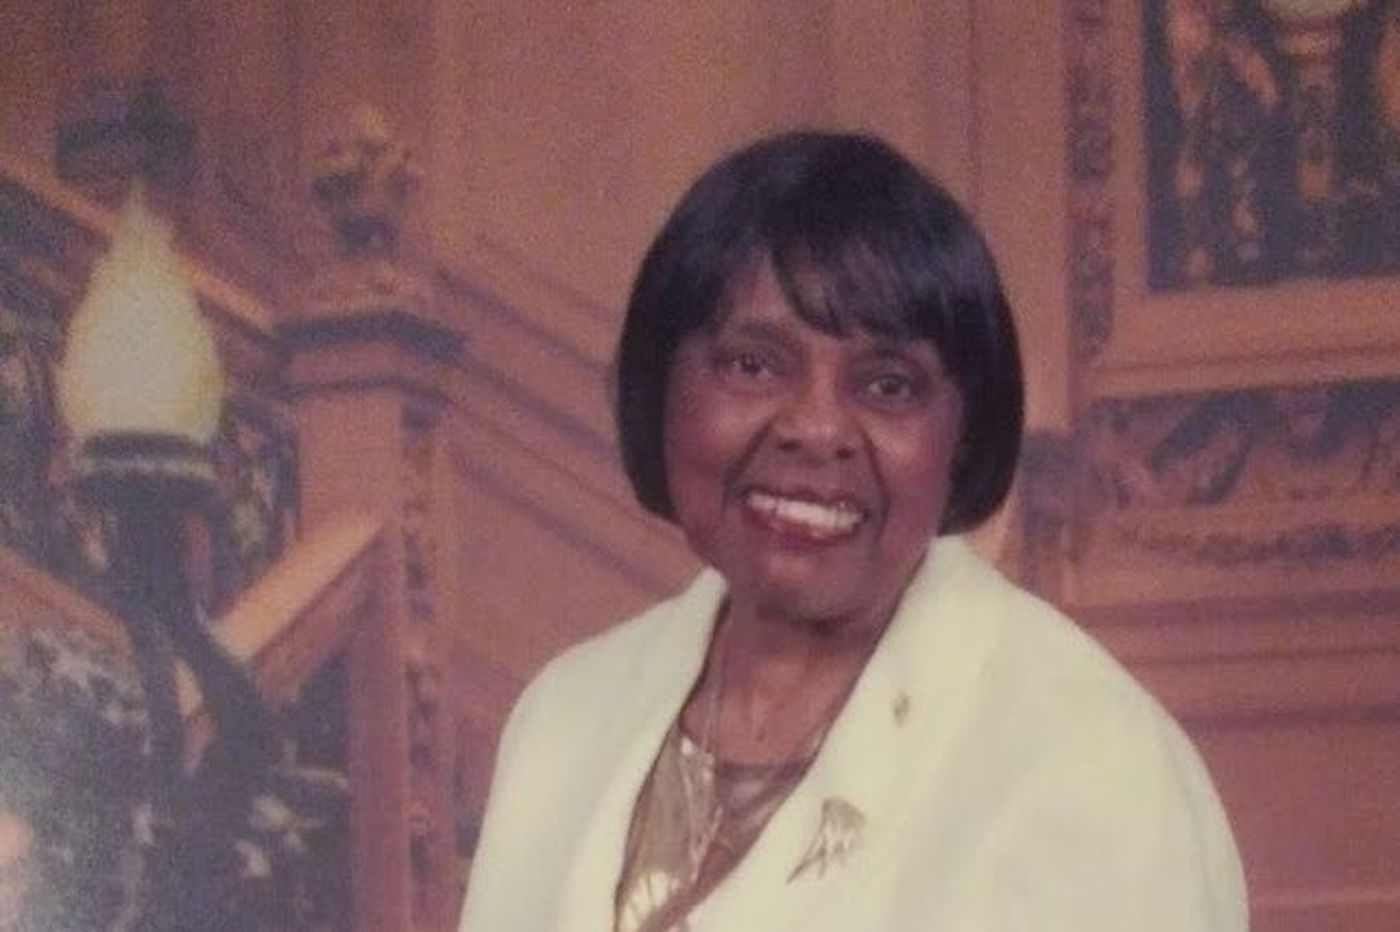 Frances J. Blakney, 87, Philly social-services worker and busy church and civic volunteer